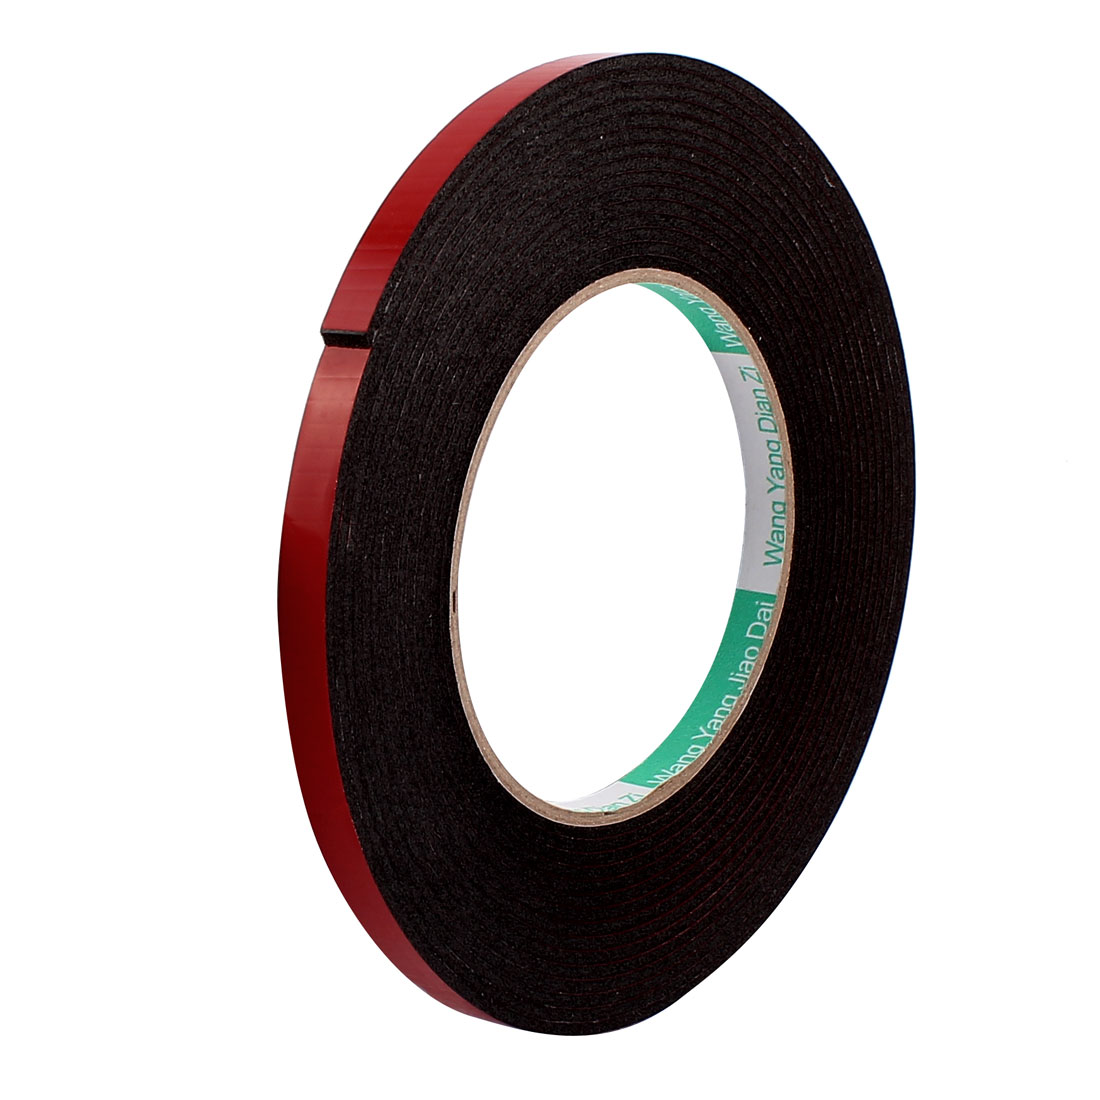 8mmx2mm Double Sided Sponge Tape Adhesive Sticker Foam Glue Strip Sealing 5 Meters